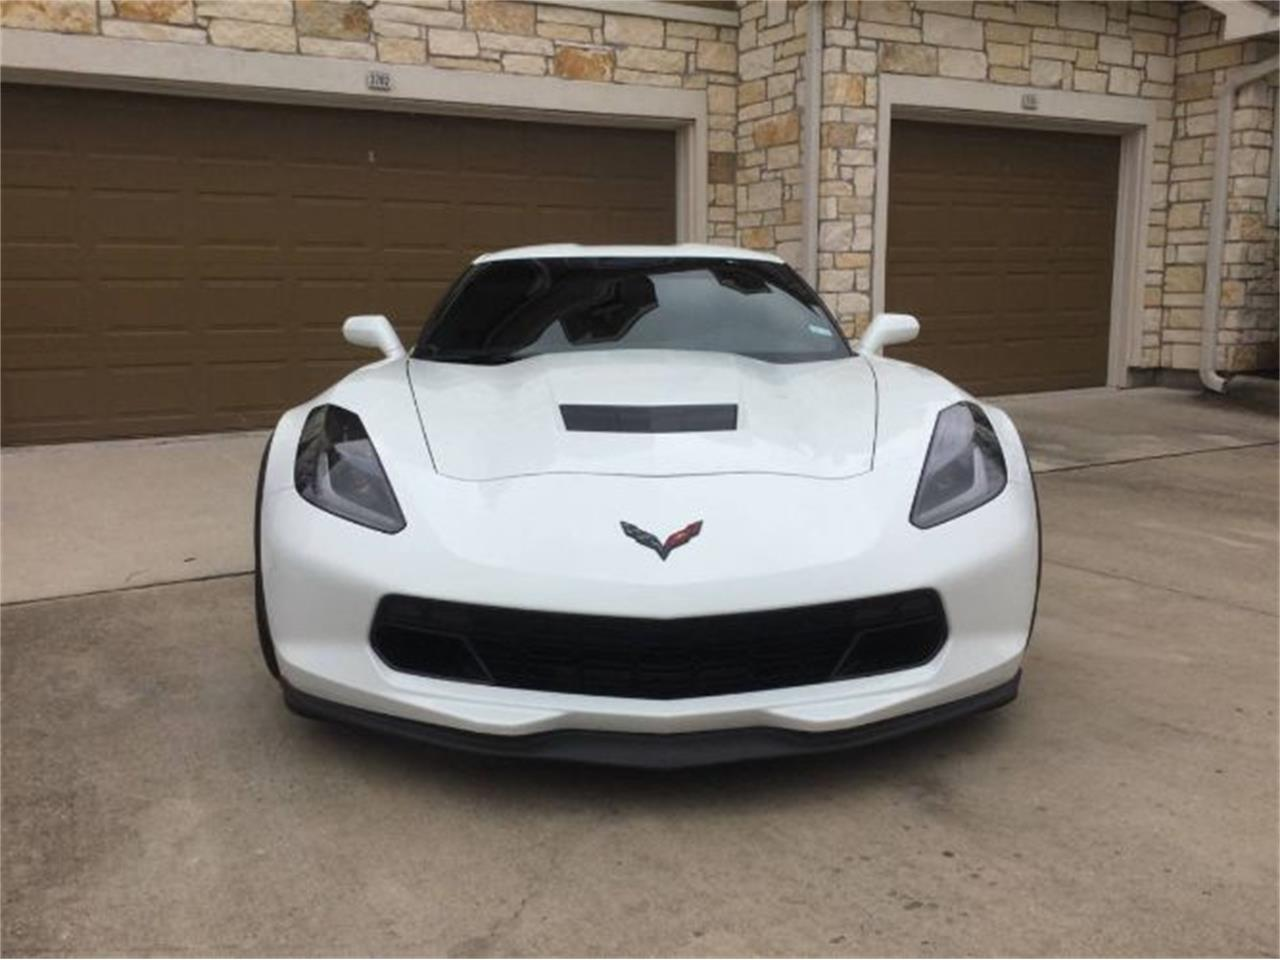 2018 Chevrolet Corvette (CC-1419903) for sale in Cadillac, Michigan